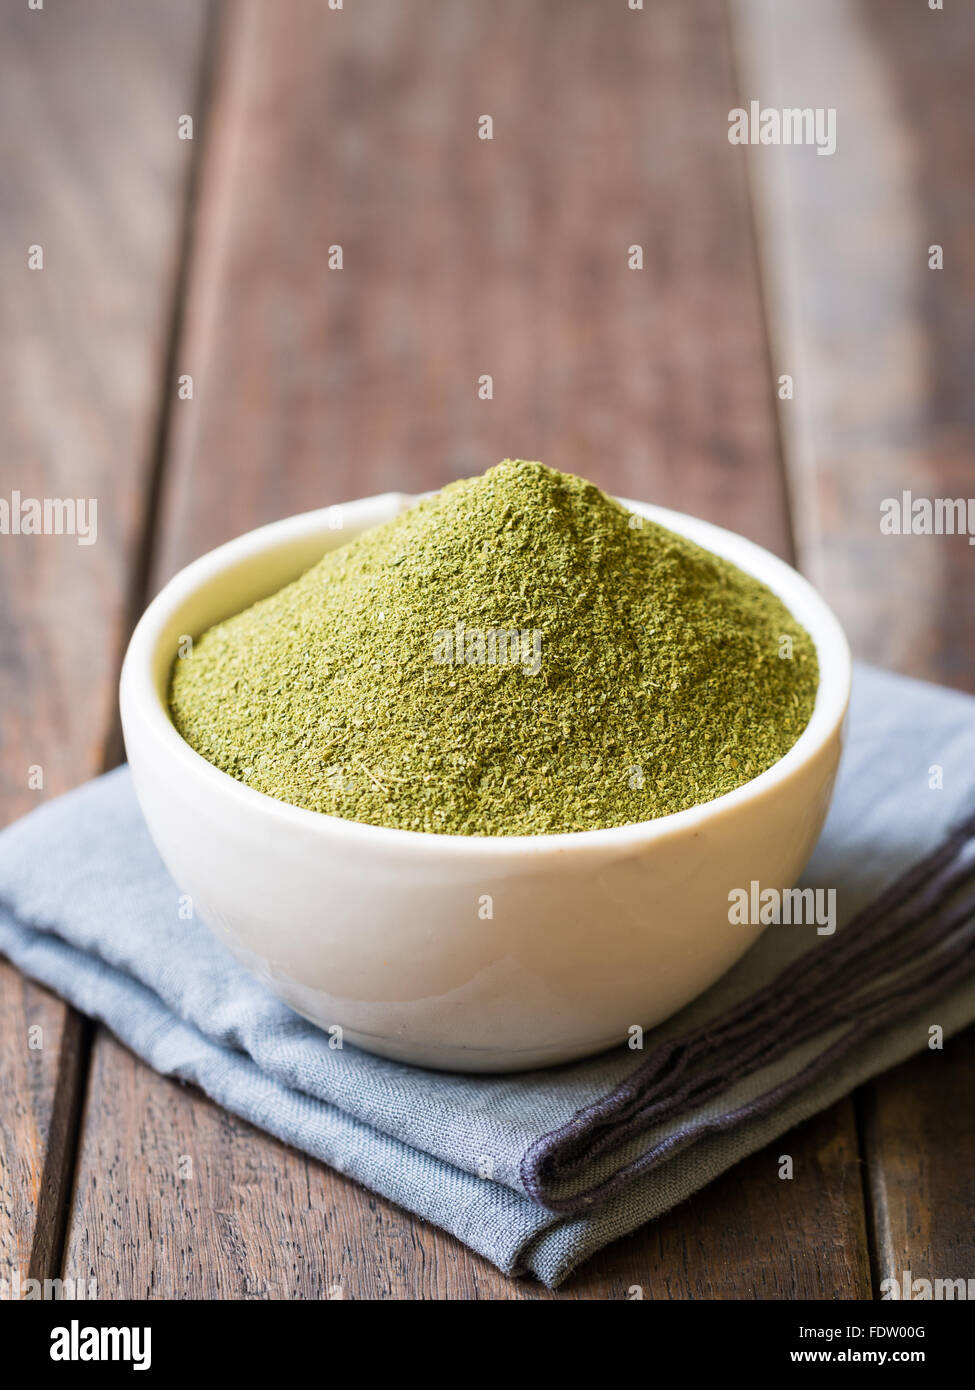 Moringa powder (superfood) in a white bowl on a wooden rustic background. Vertical orientation. - Stock Image